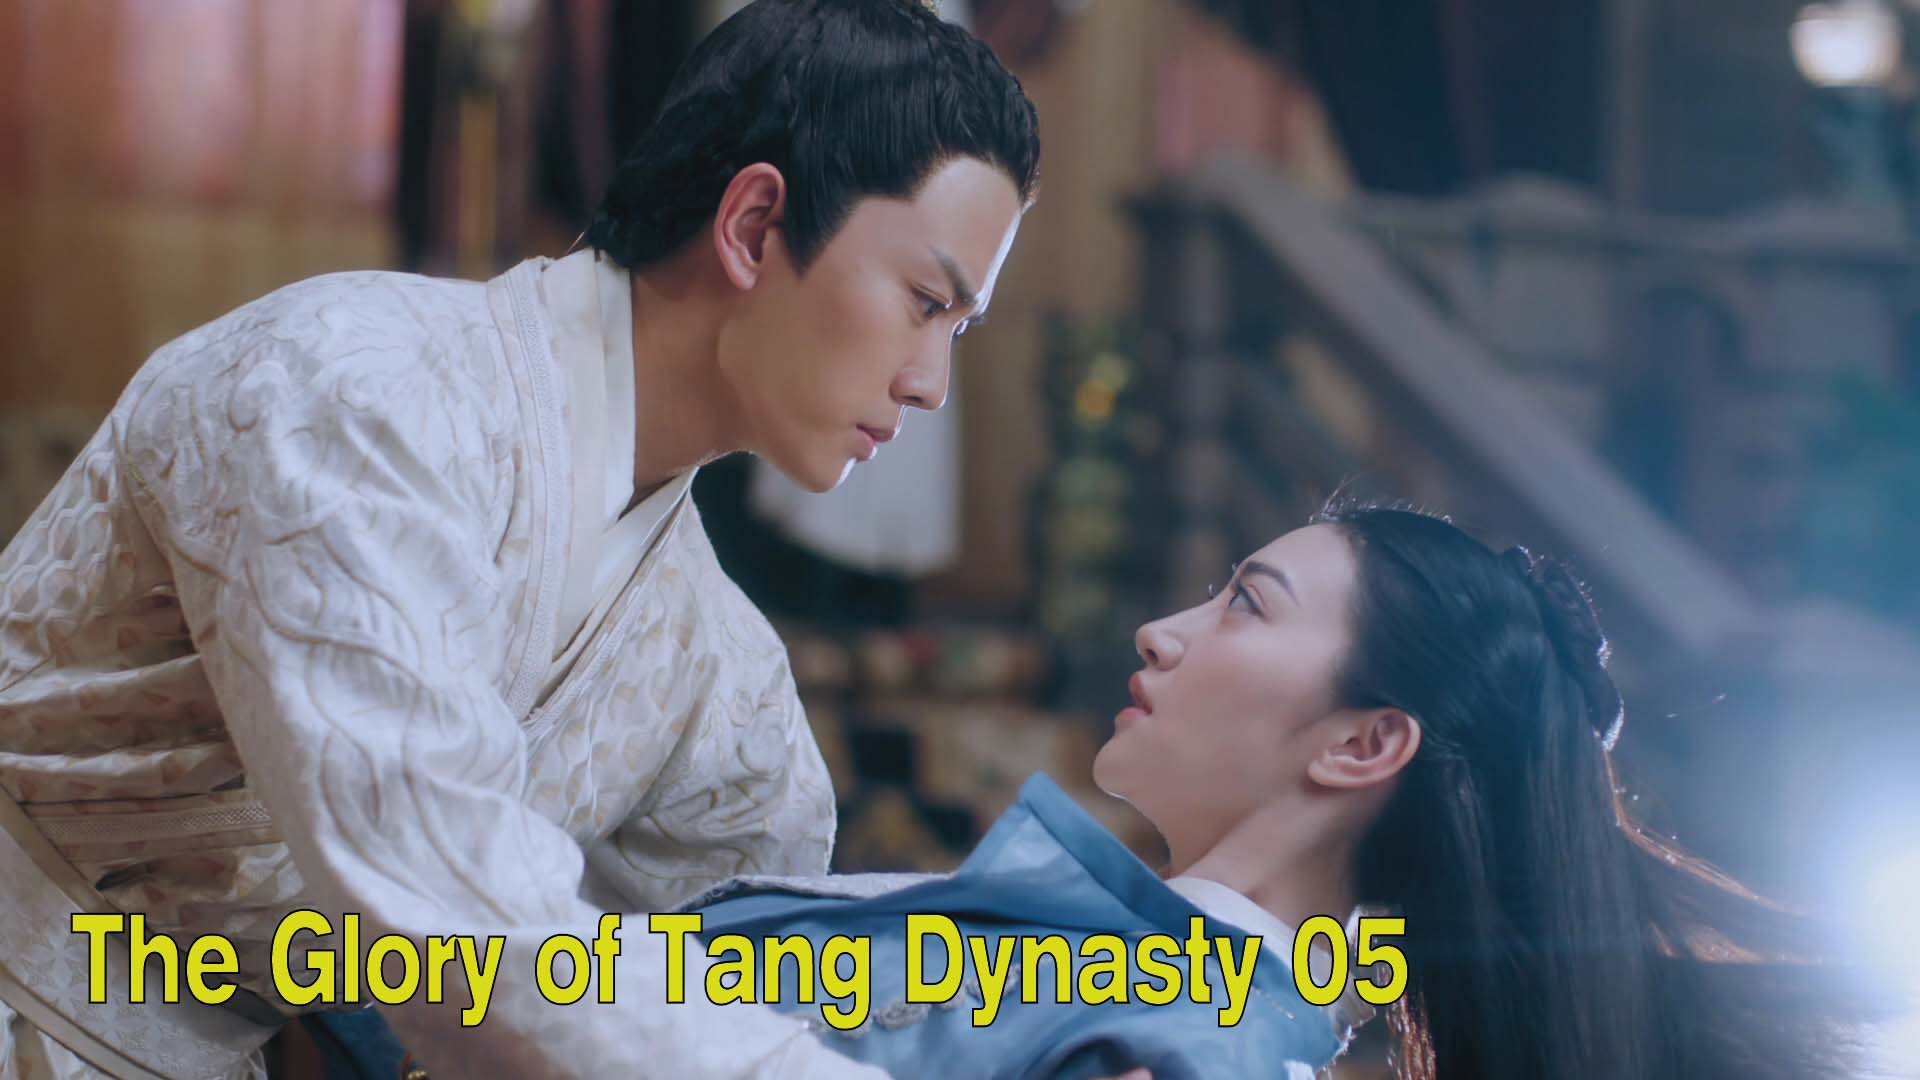 The Glory of Tang Dynasty